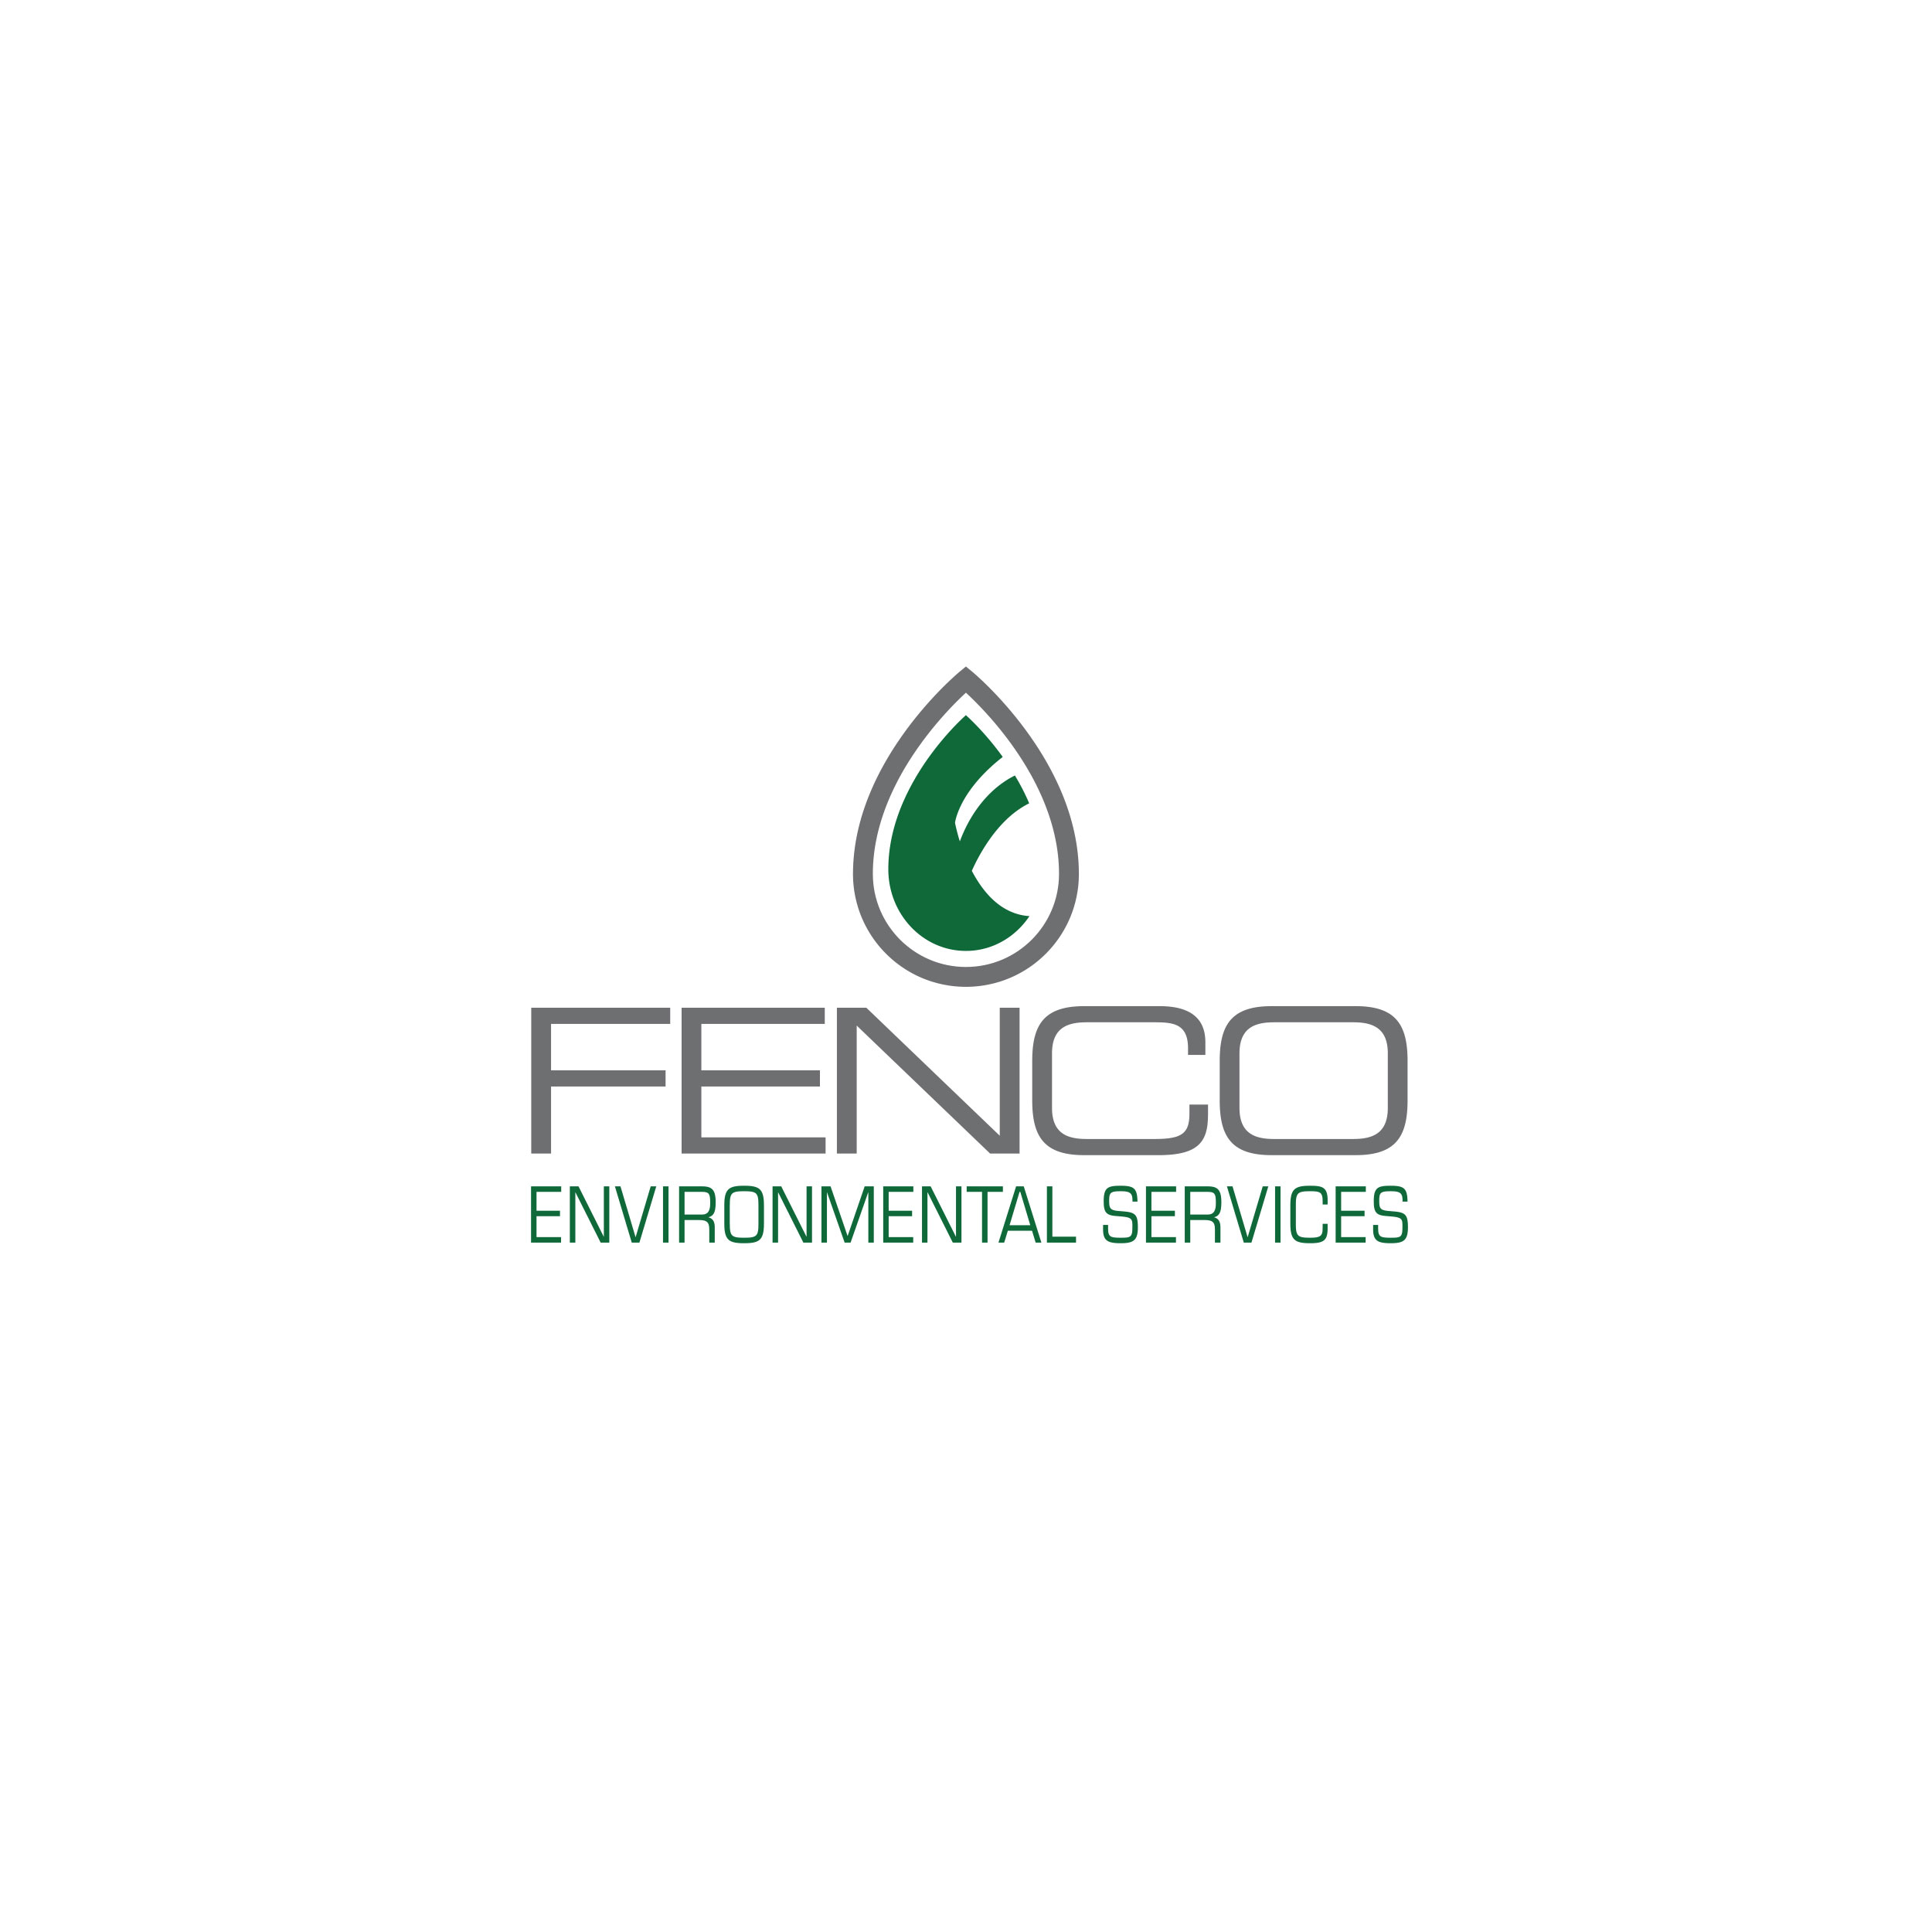 ND-fenco-logo.jpg